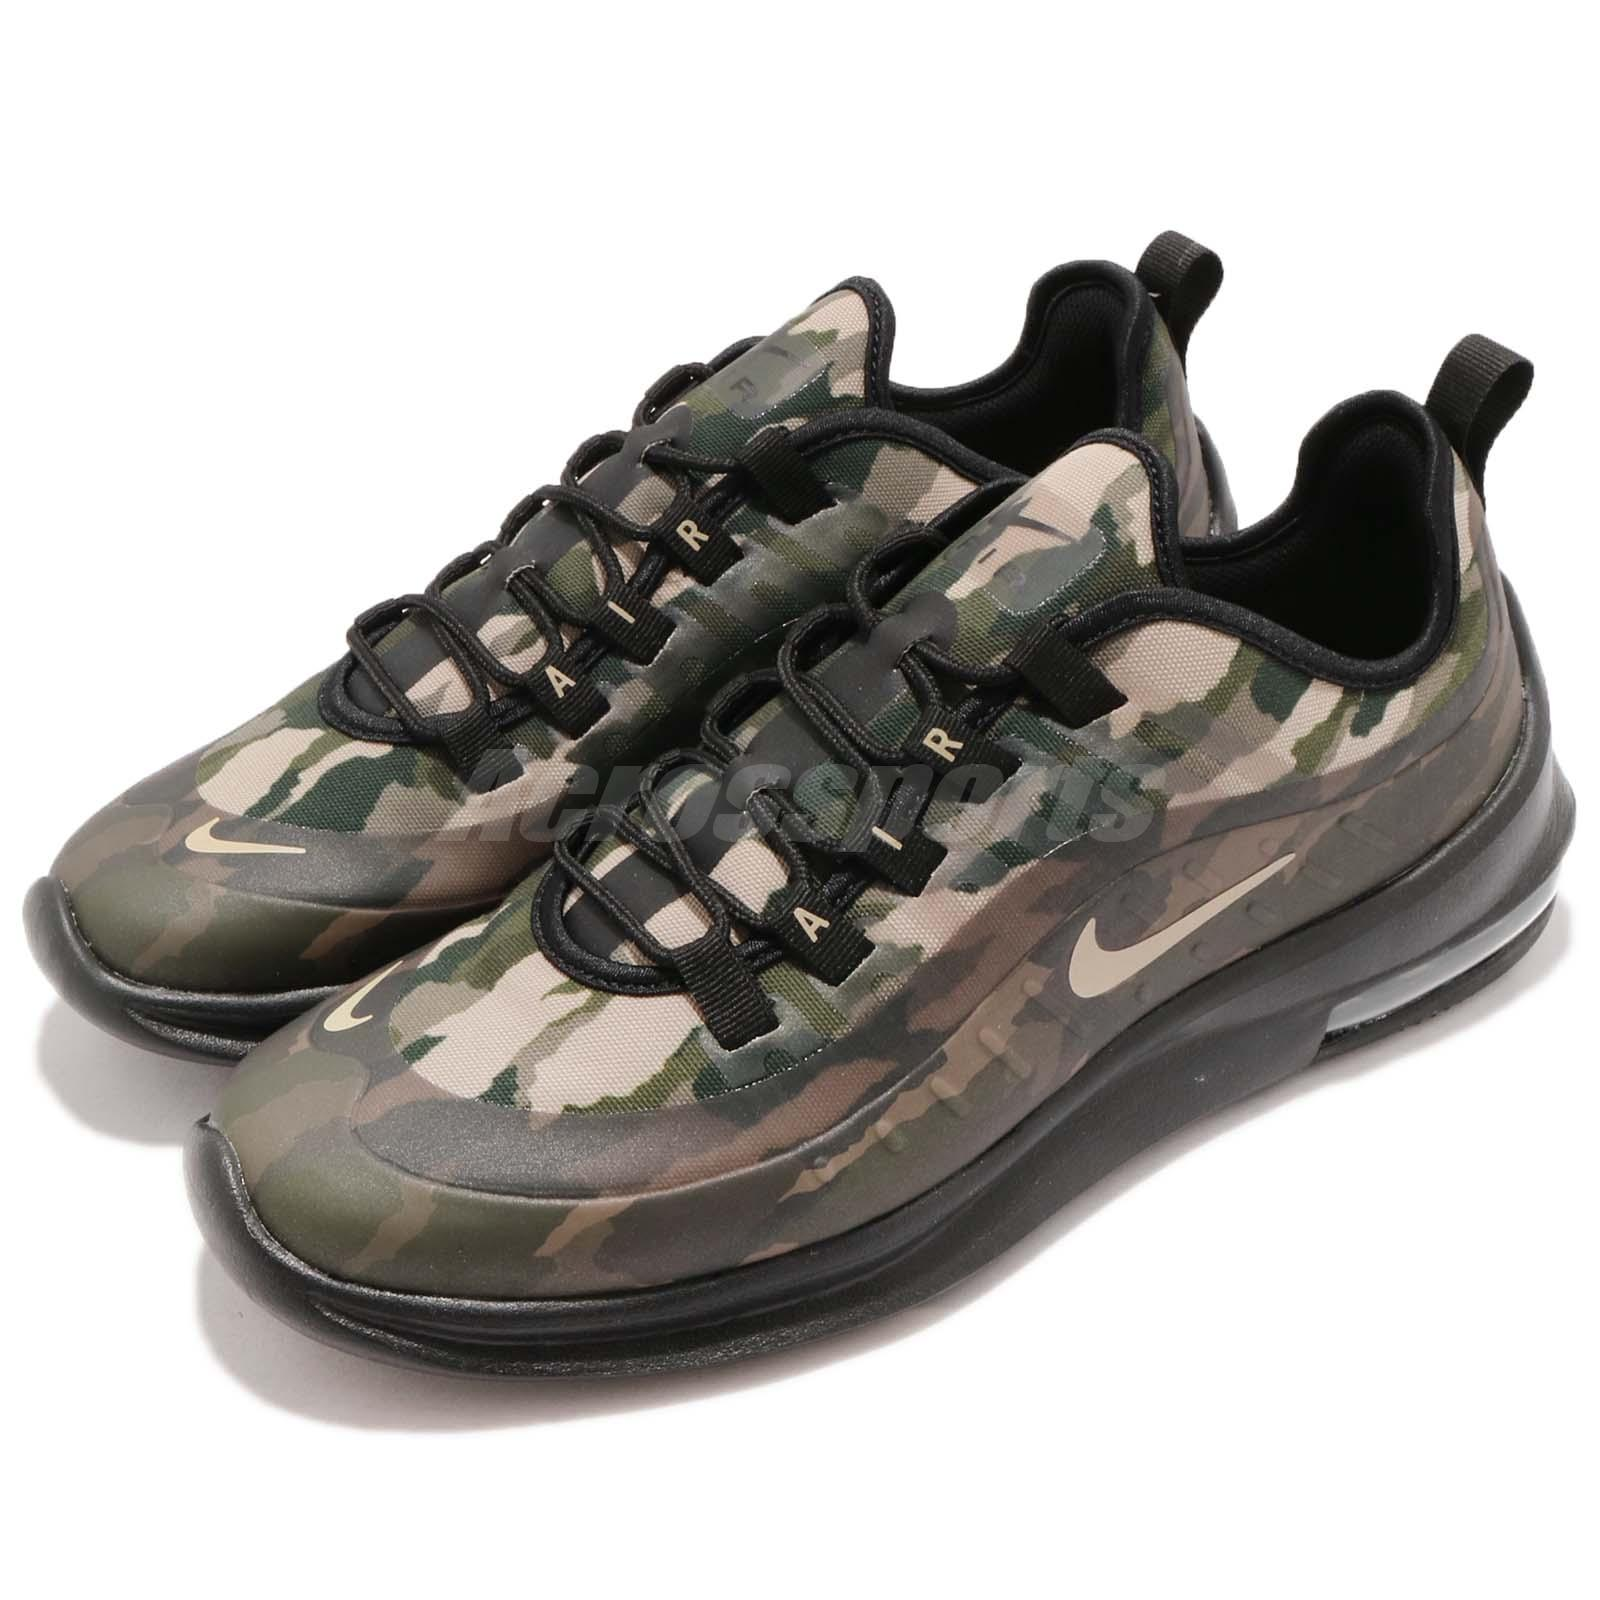 42defa75893d Details about Nike Air Max Axis PREM Black Mushroom Camo Men Running Shoes  Sneakers AA2148-002